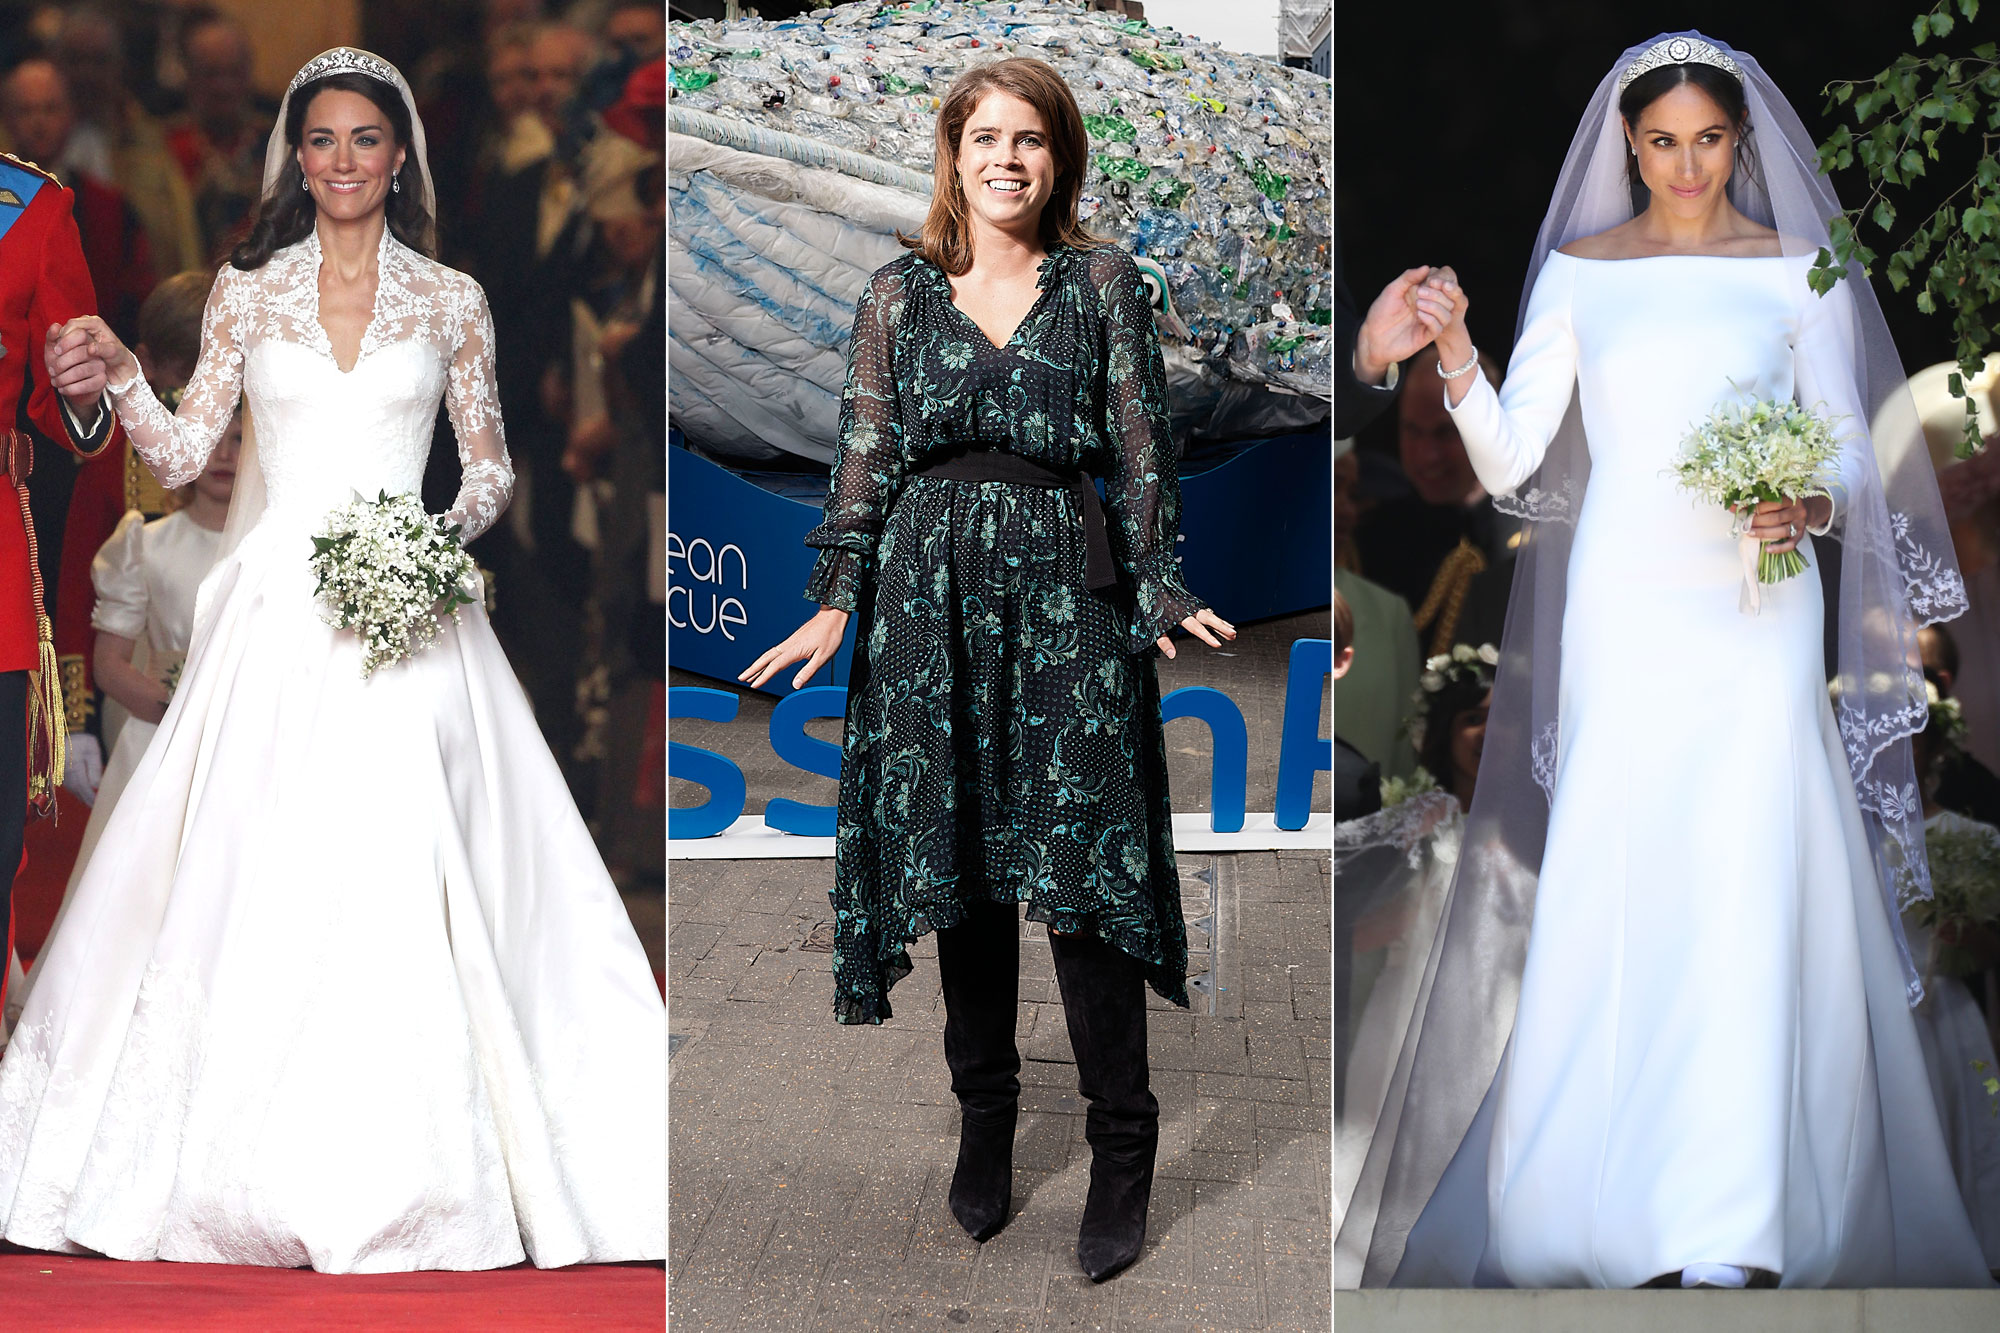 How Eugenie S Wedding Dress Will Compare To Meghan And Kate S